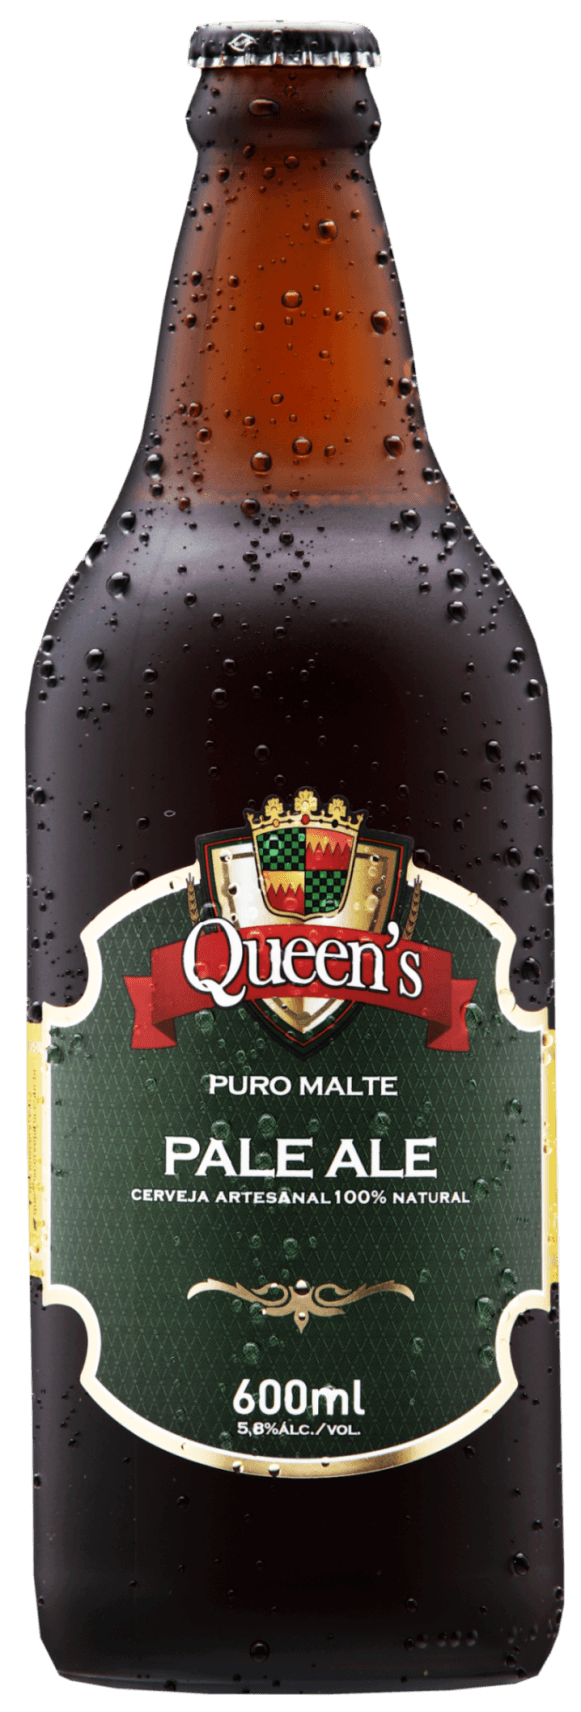 Queen's Pale Ale